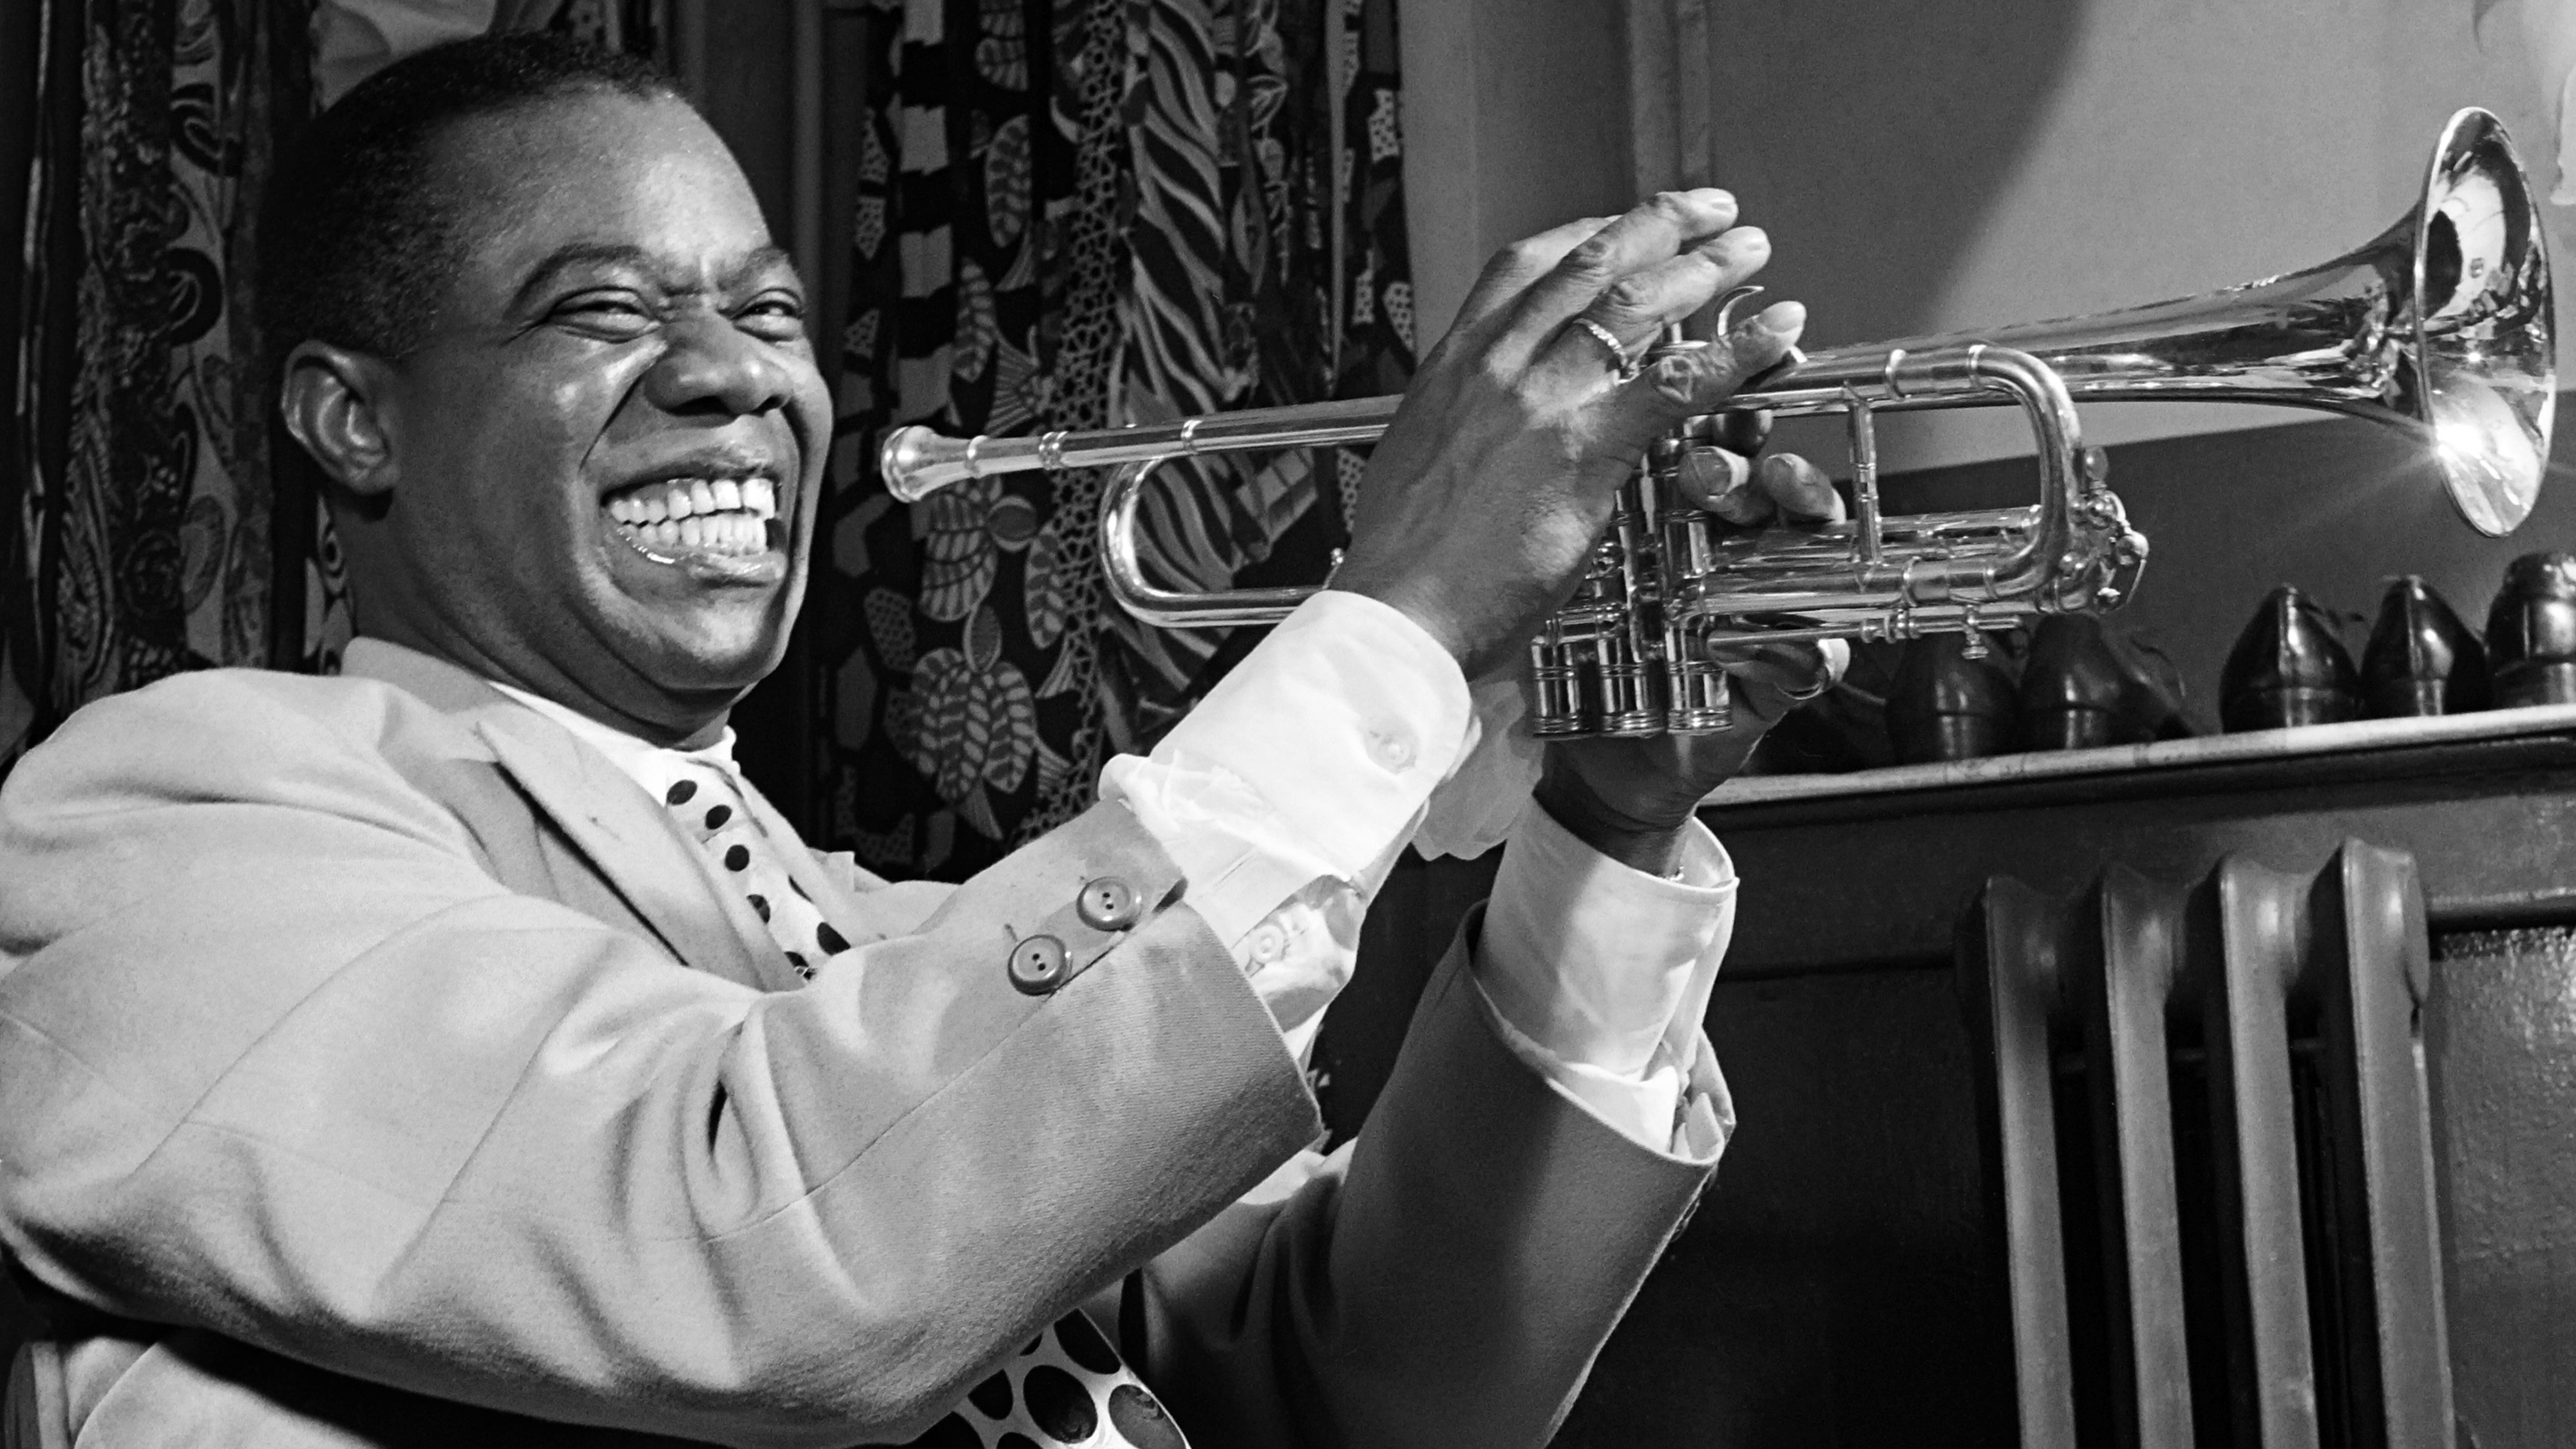 Satchmo In His Adolescence: 1915 Film Clip May Show Young Louis Armstrong